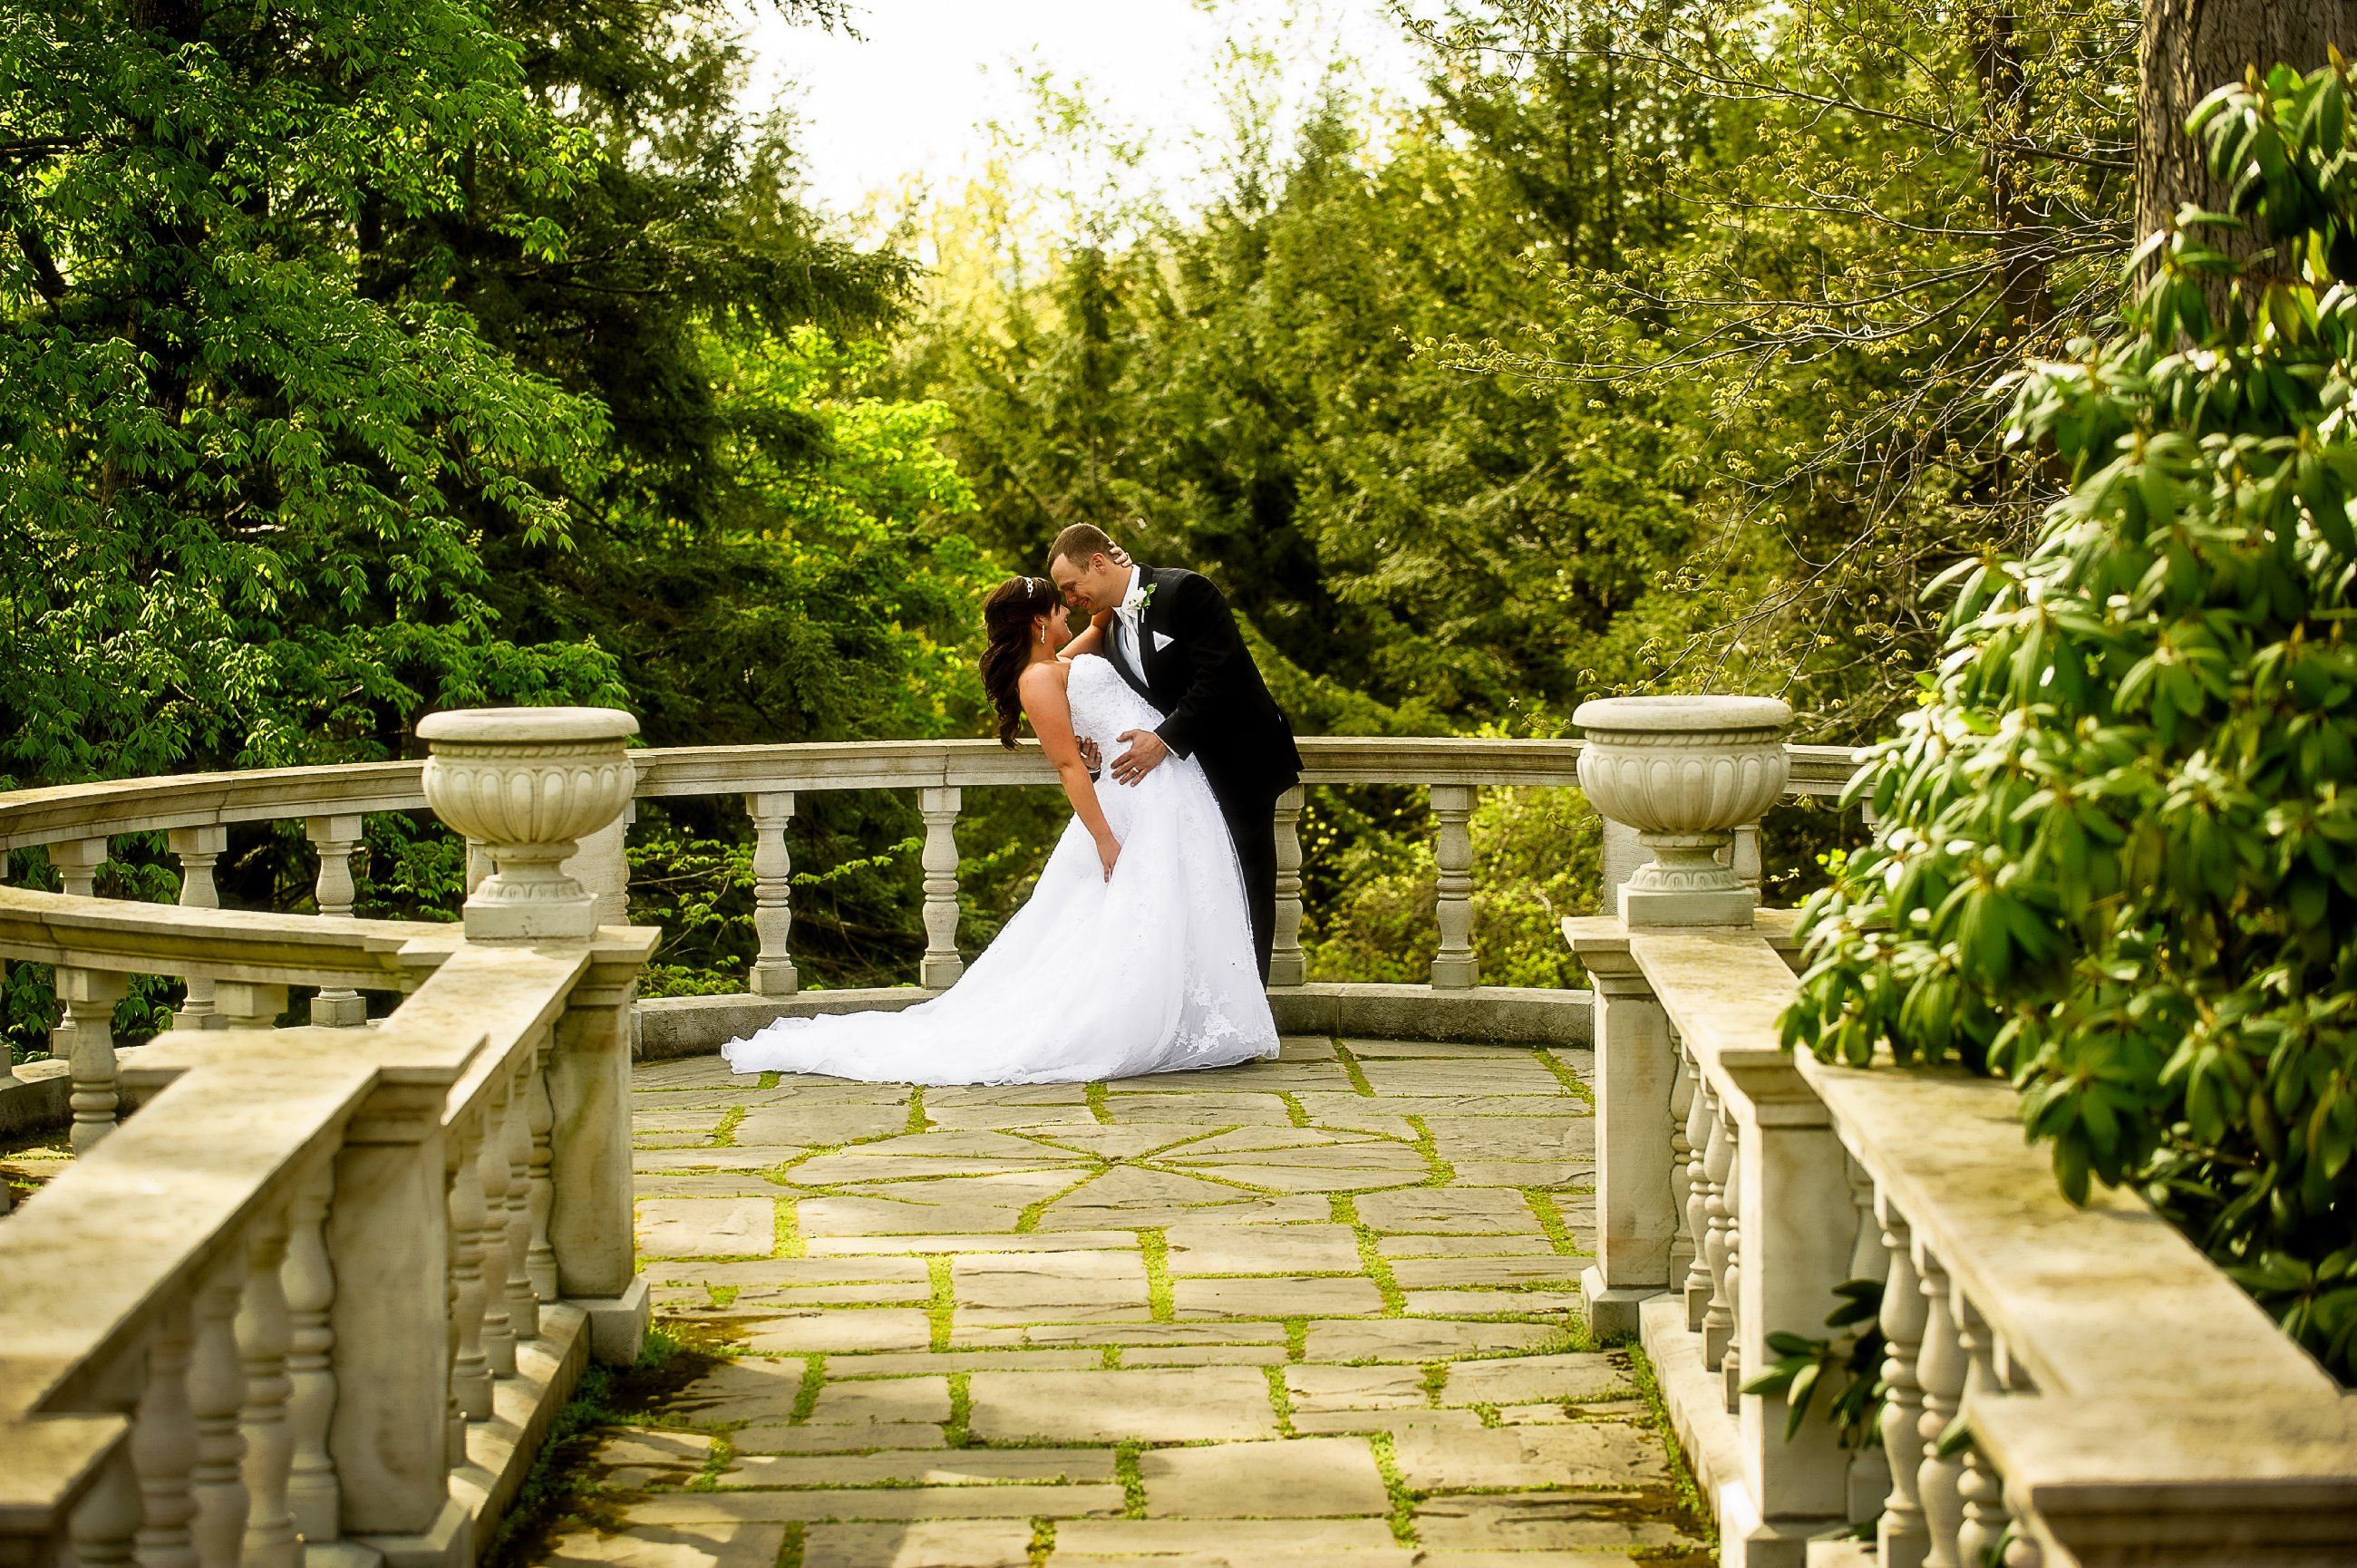 wedding picture locations akron ohio%0A stan hywet wedding photos  Google Search